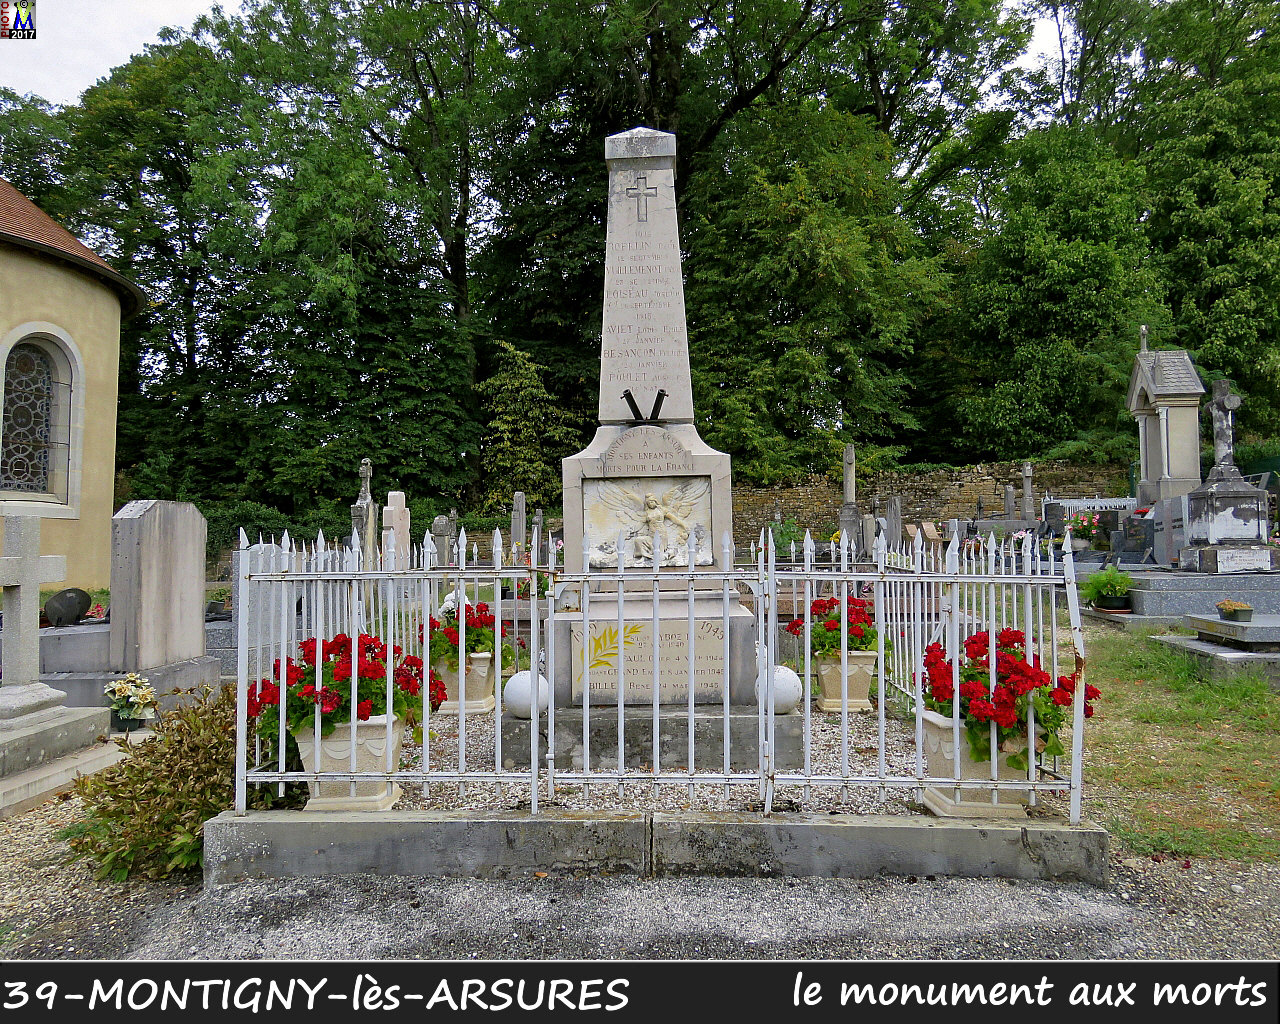 39MONTIGNY-les-ARSURES_morts_100.jpg